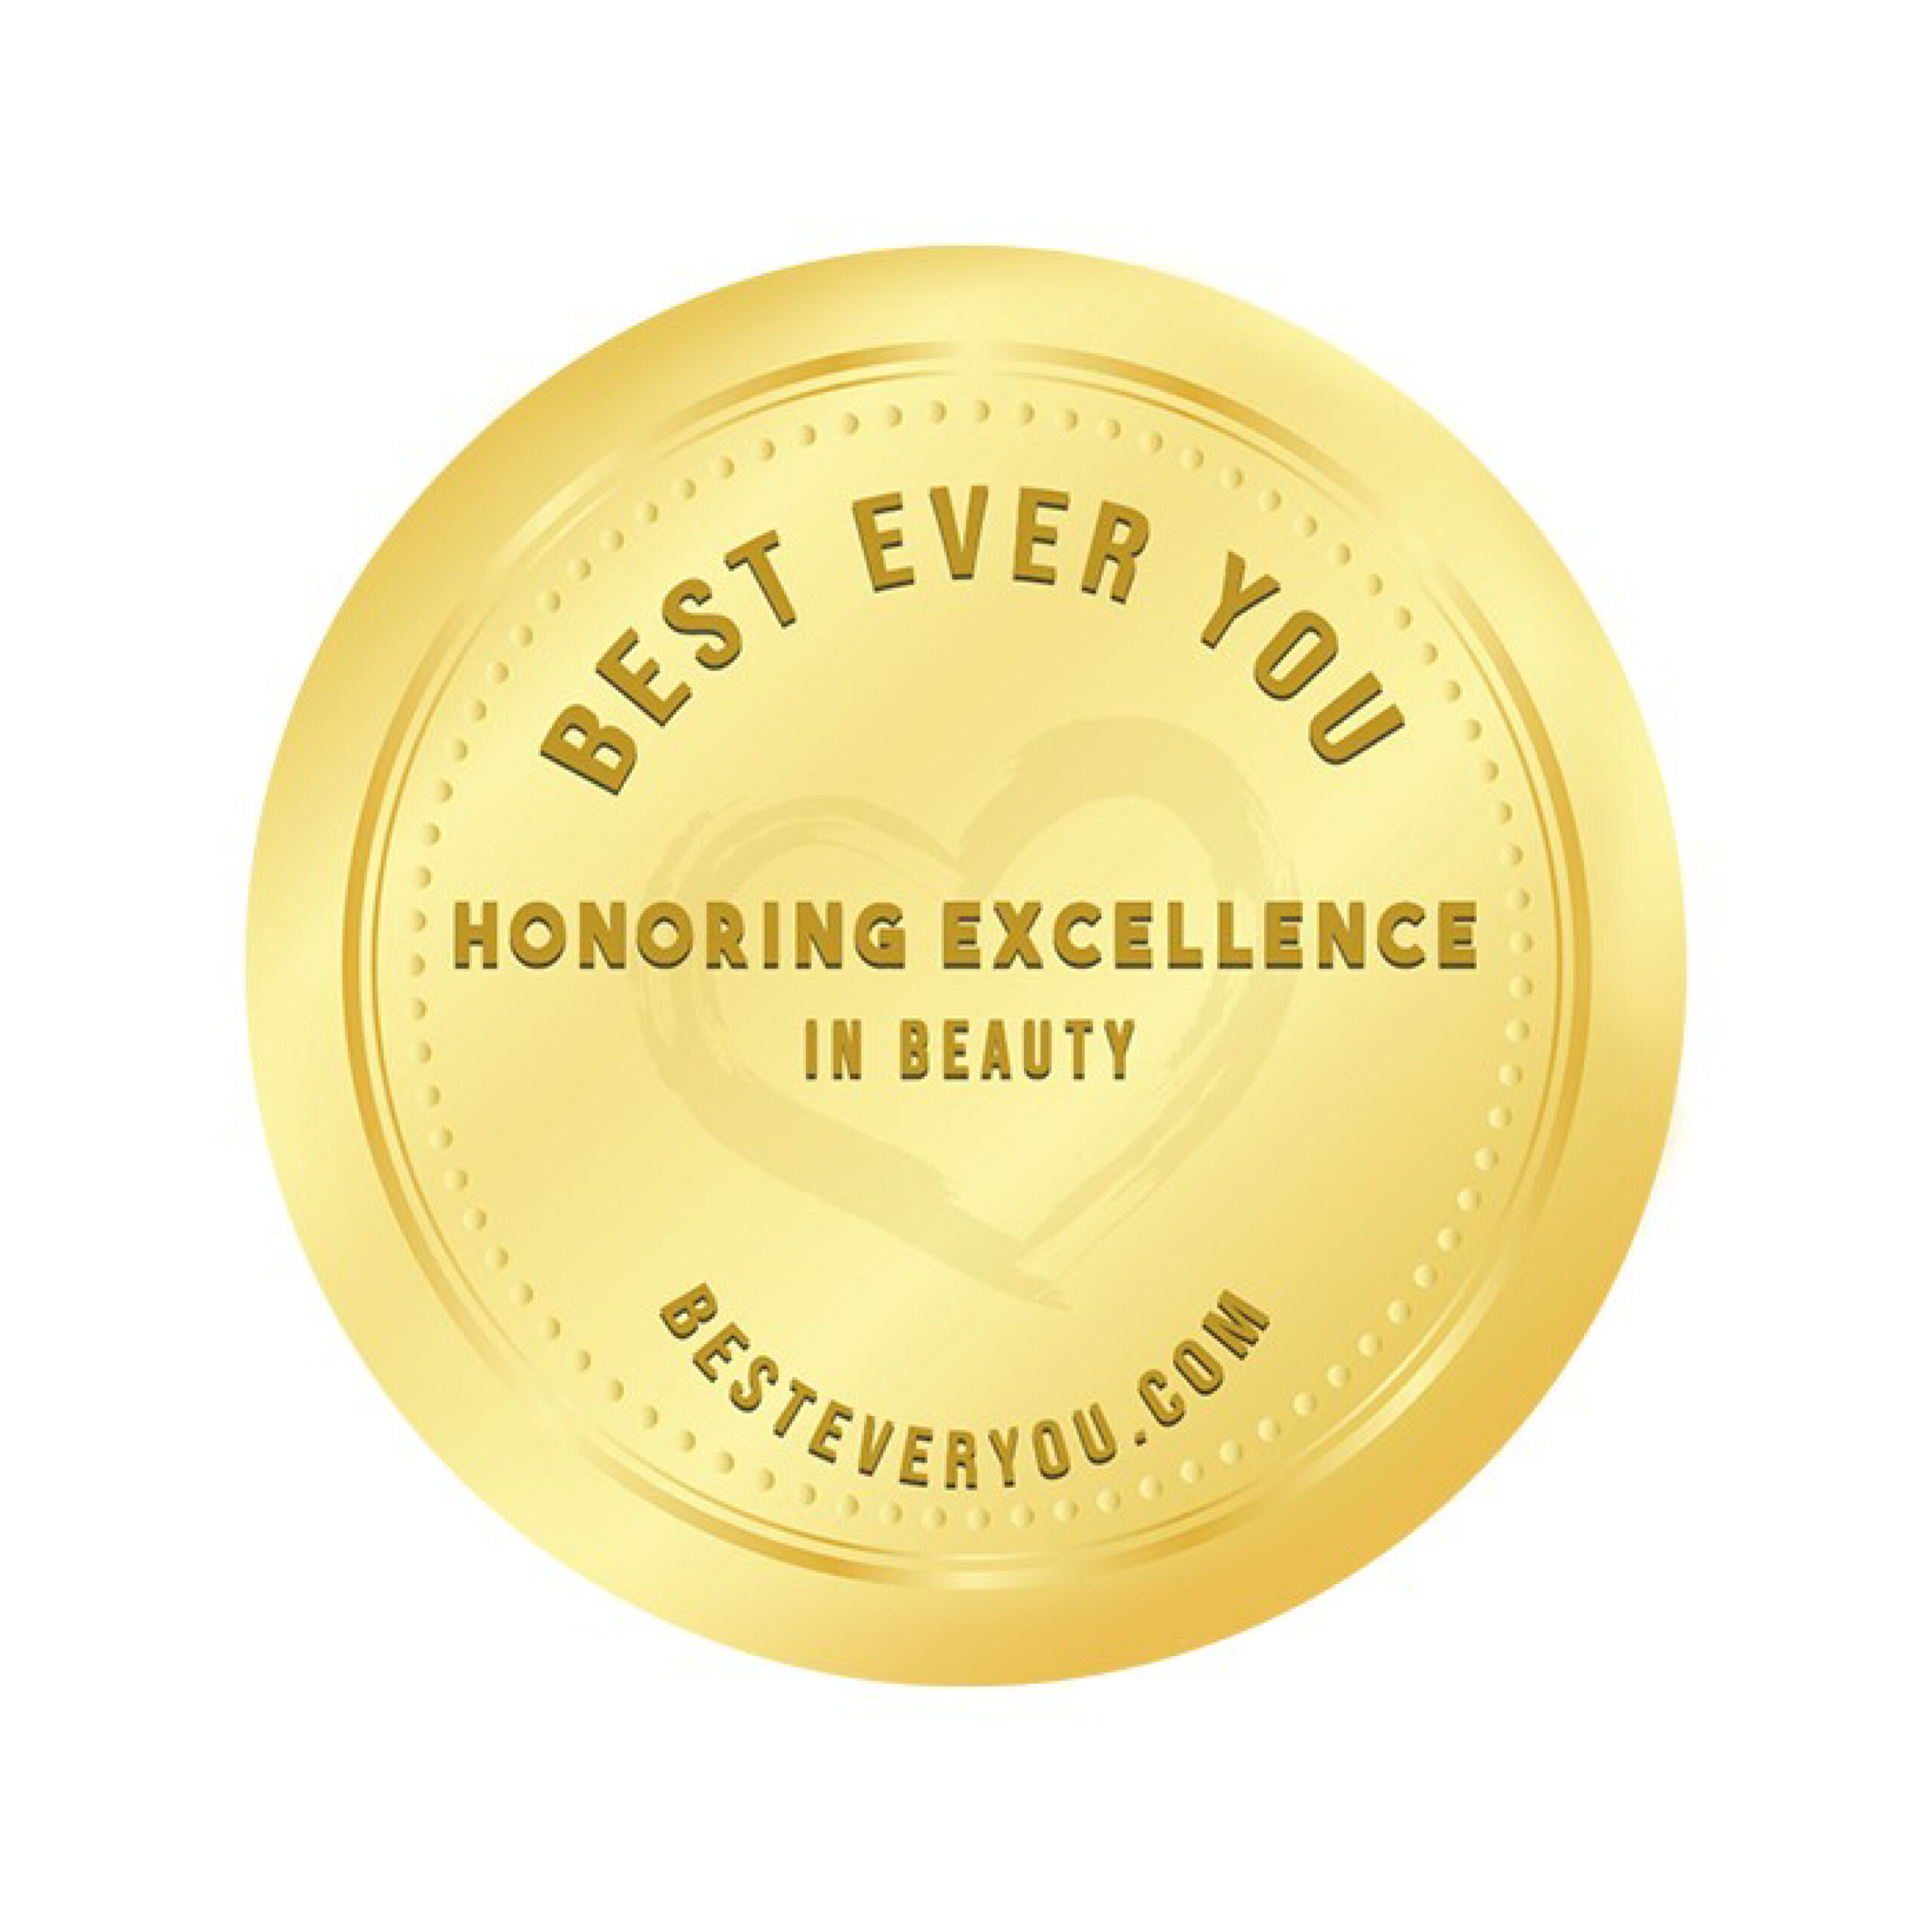 Skin 2 Skin Awarded Best Skincare by Best Ever You